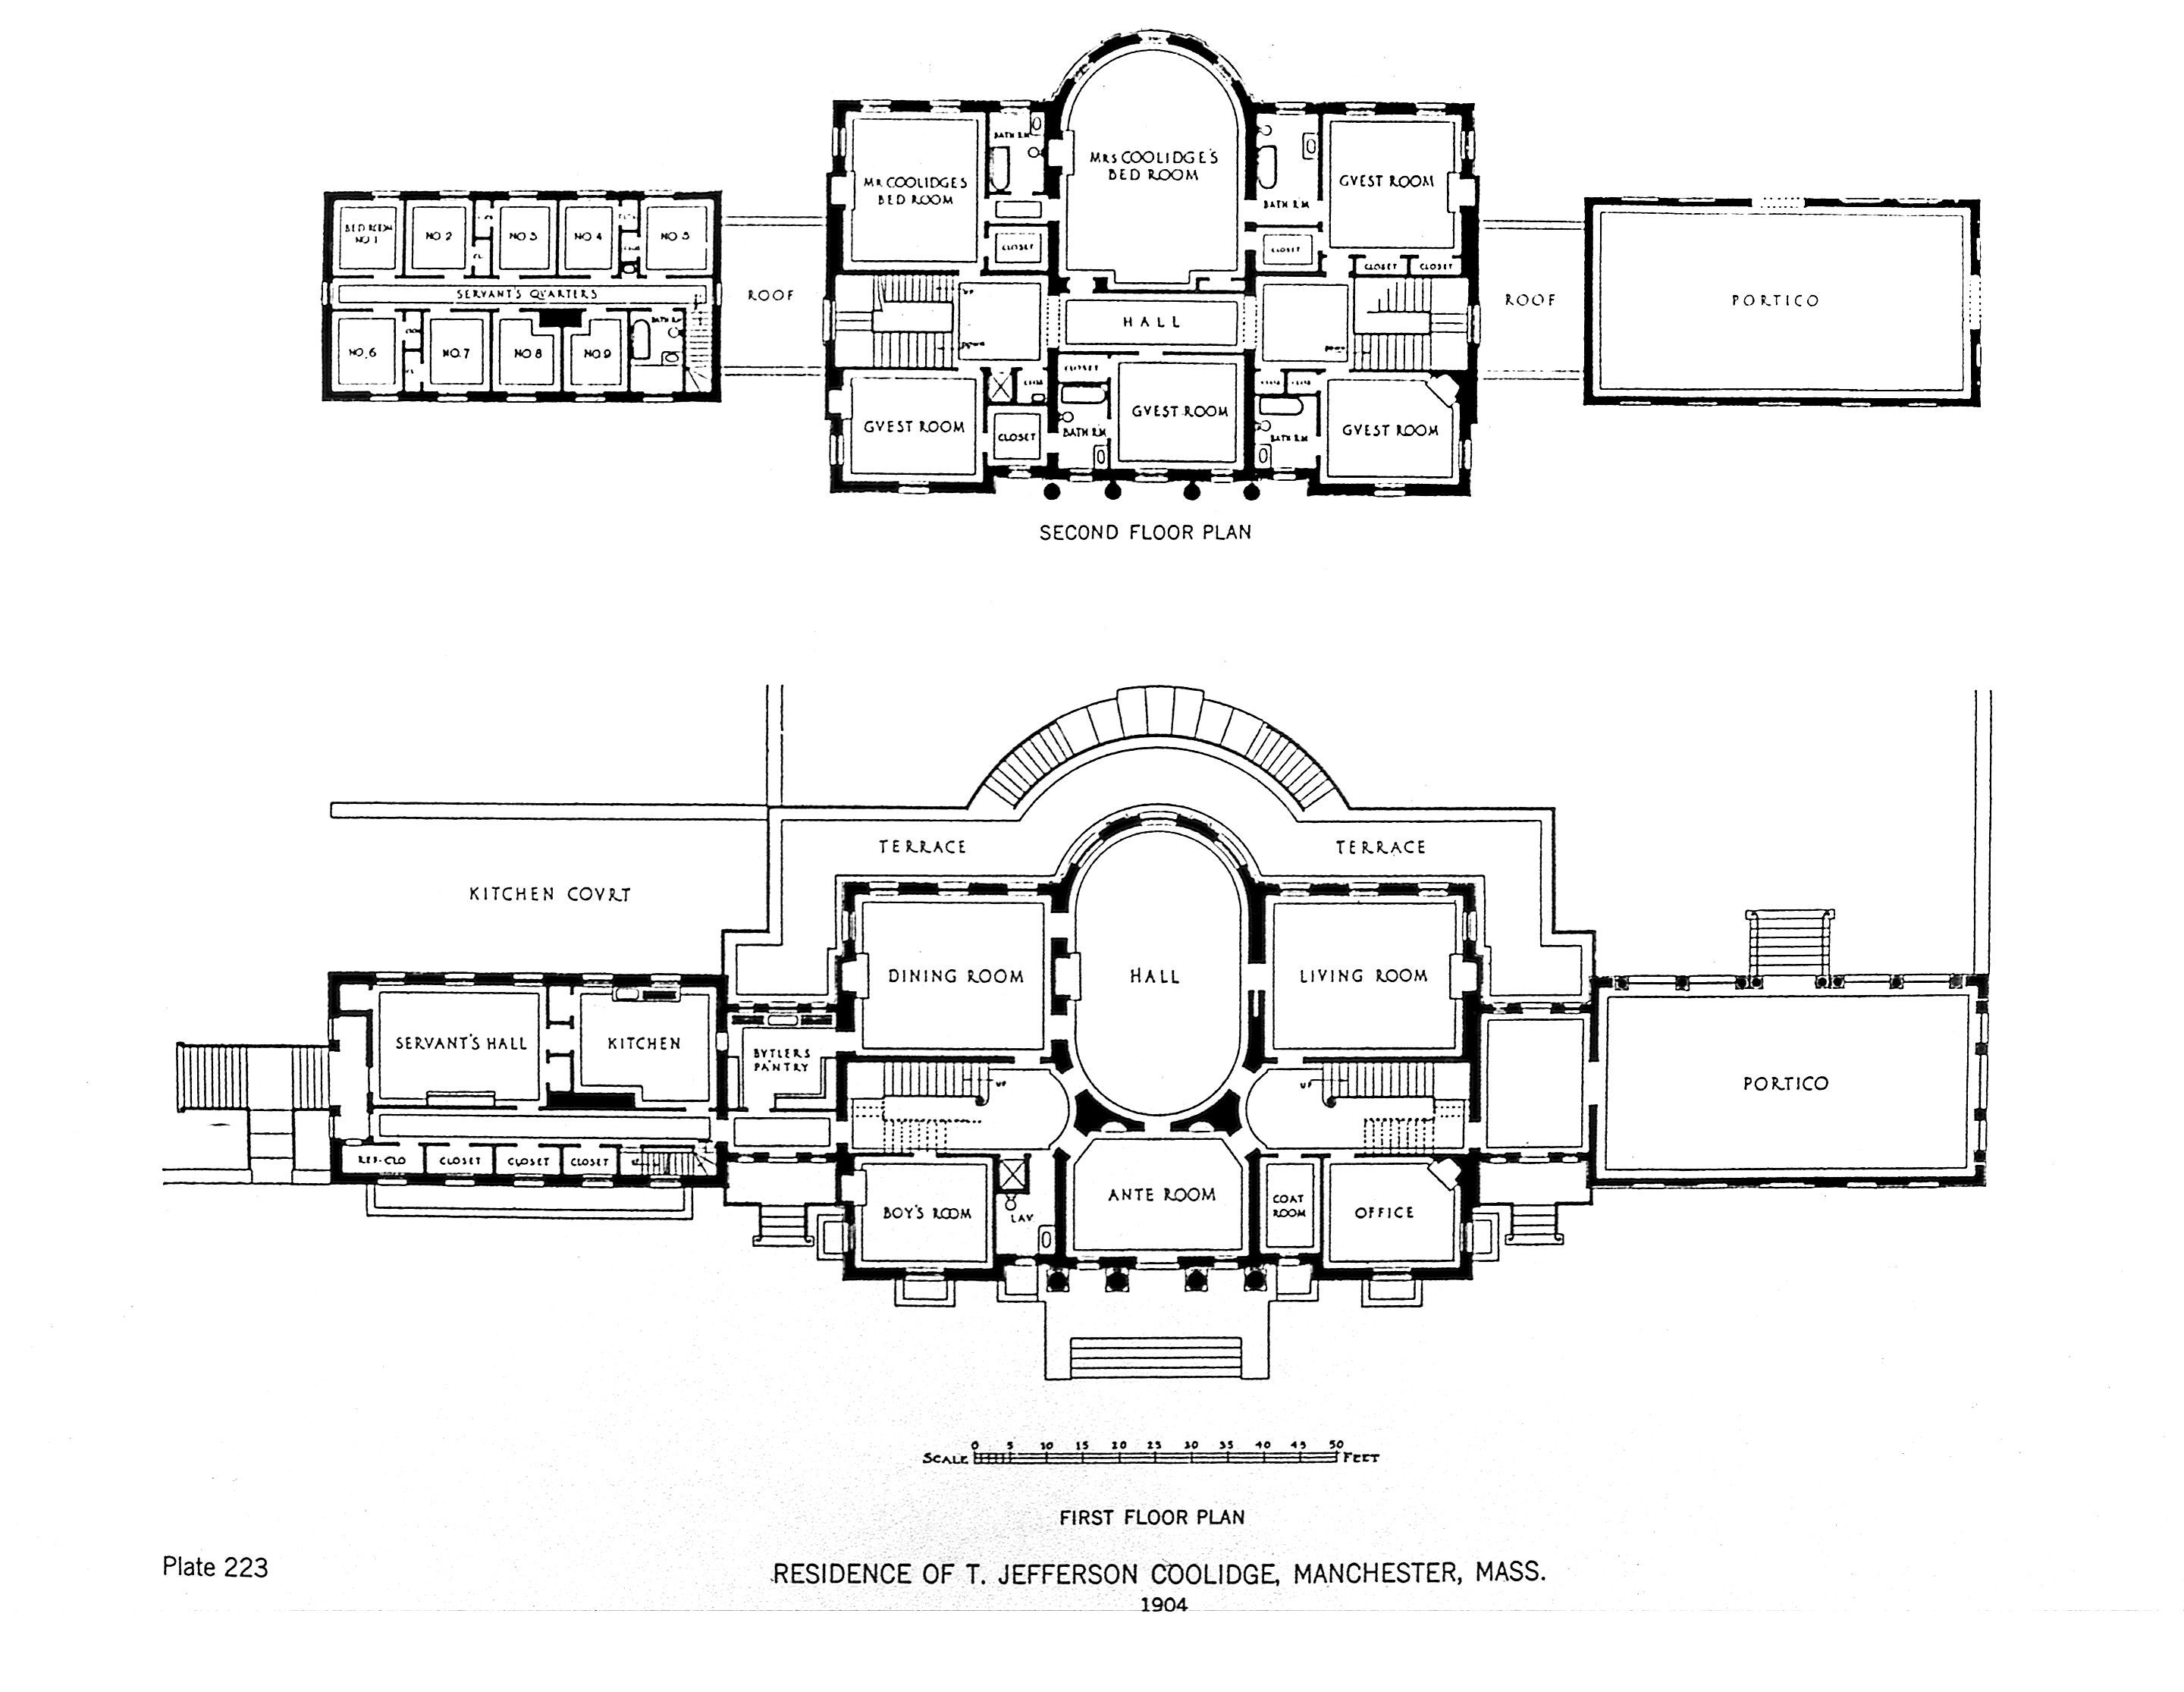 Marble Palace Floor Plans Residence Of T Jefferson Coolidge Manchester Mas 1904 2880 2231 House Plans Mansion Mansion Floor Plan Floor Plans